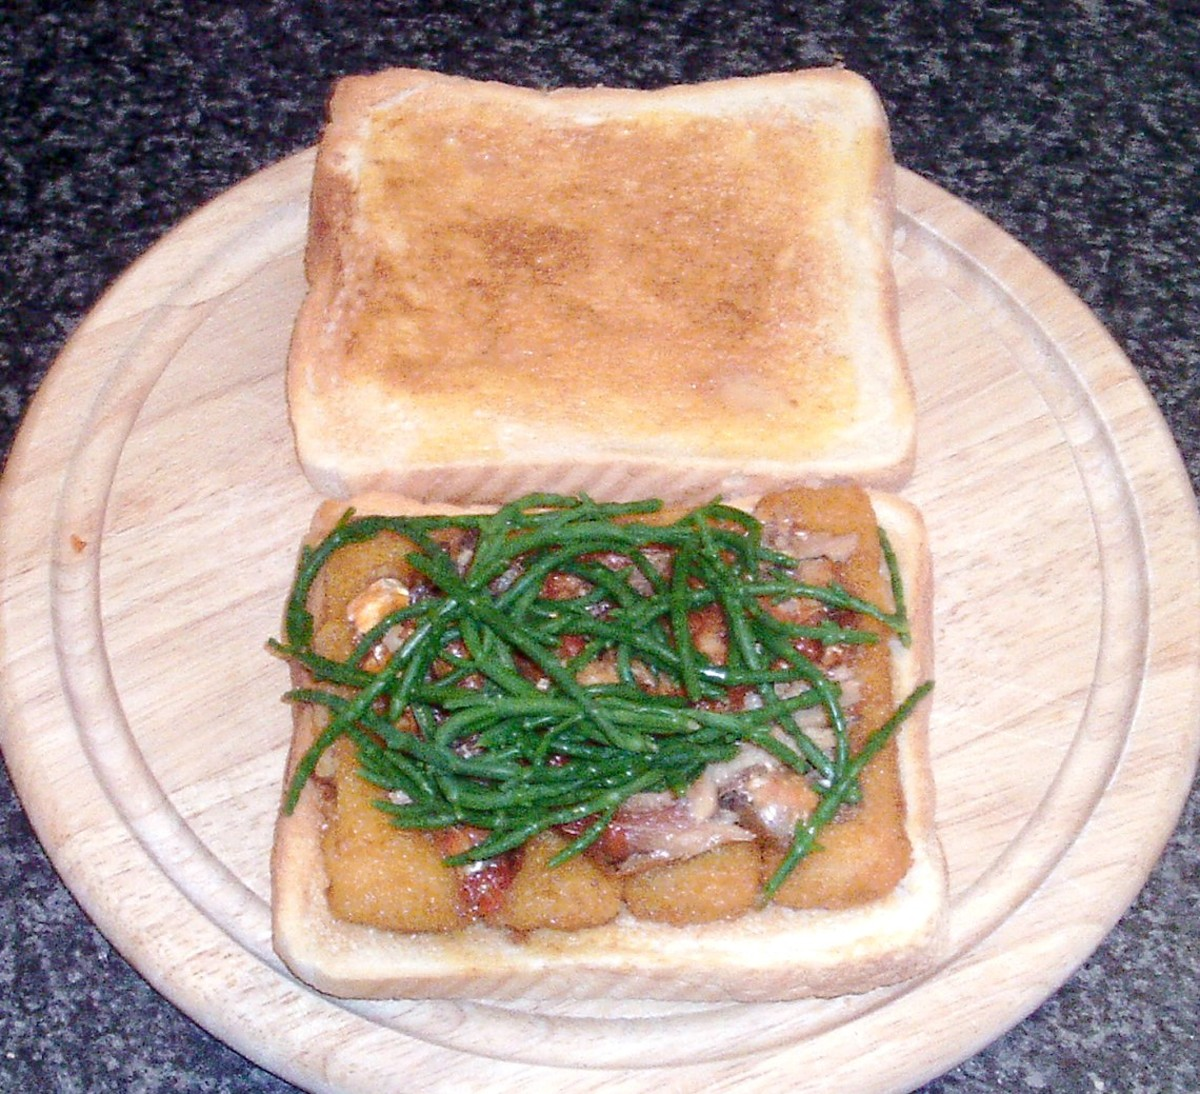 Fish fingers on toast are topped with sardines in tomato sauce and blanched samphire